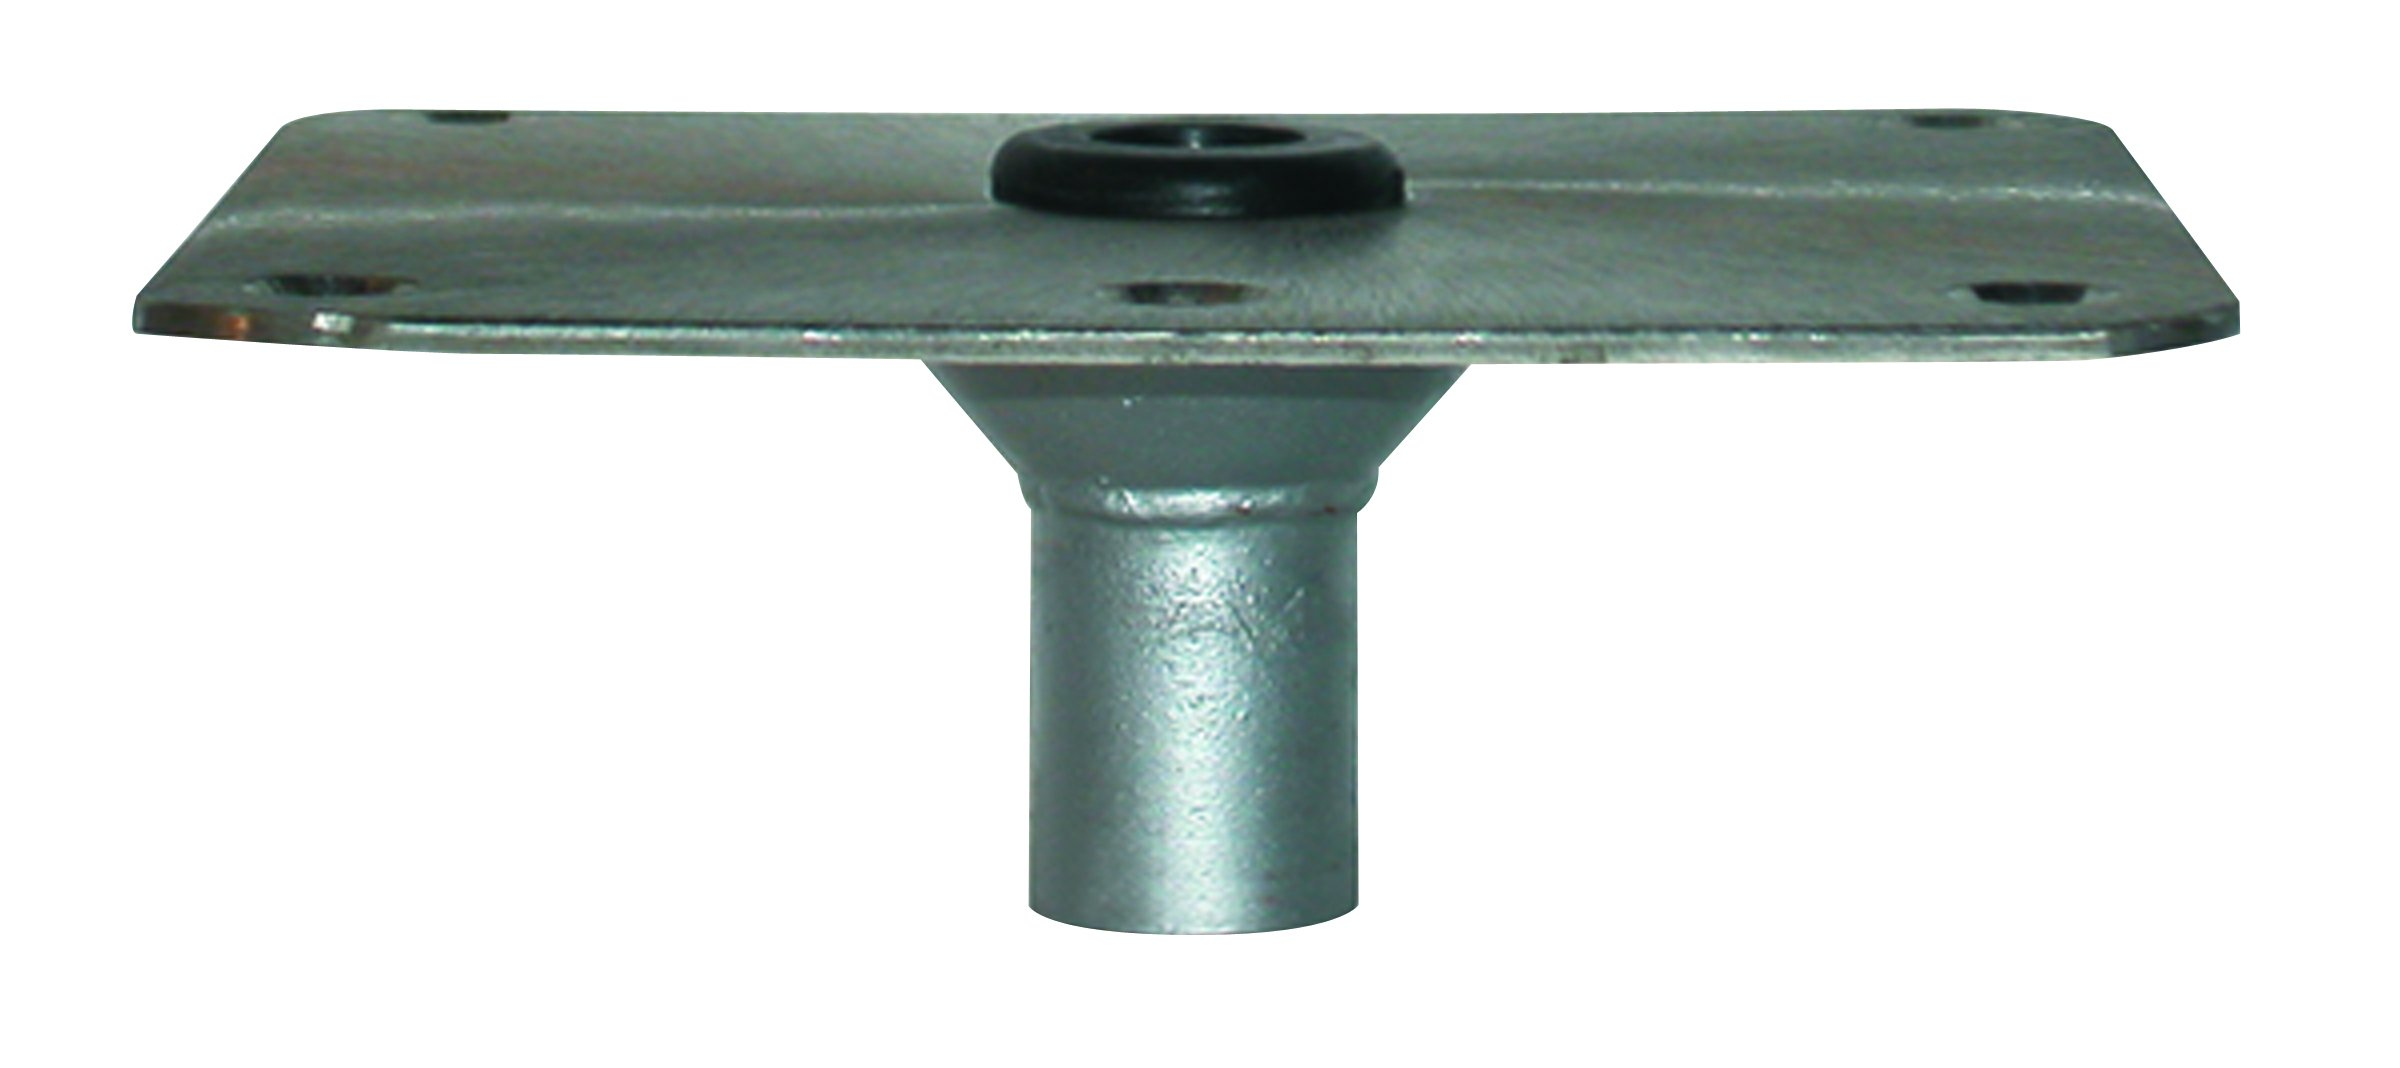 Wise 8WD2000-2 King Pin Seat Base Plate